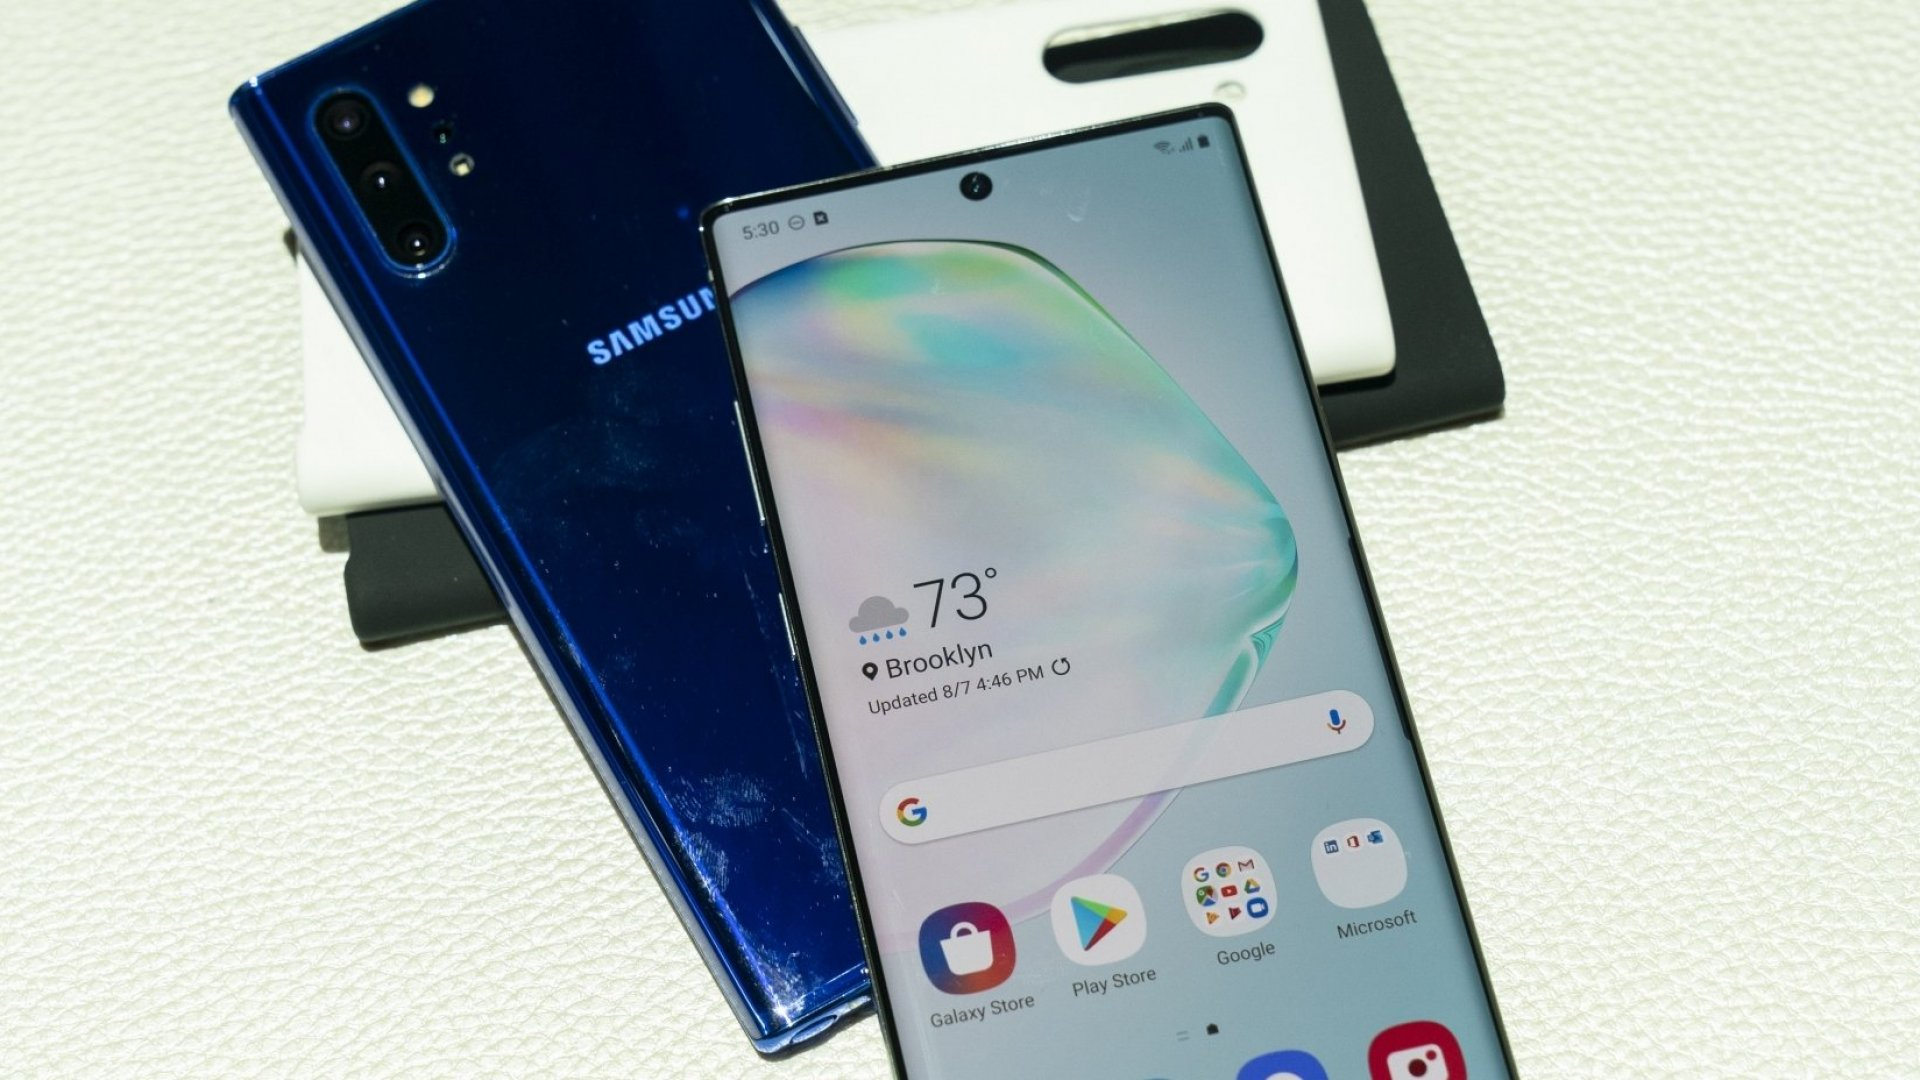 Samsung Just Announced Its New Galaxy Note Lineup and It's Bad News for Apple